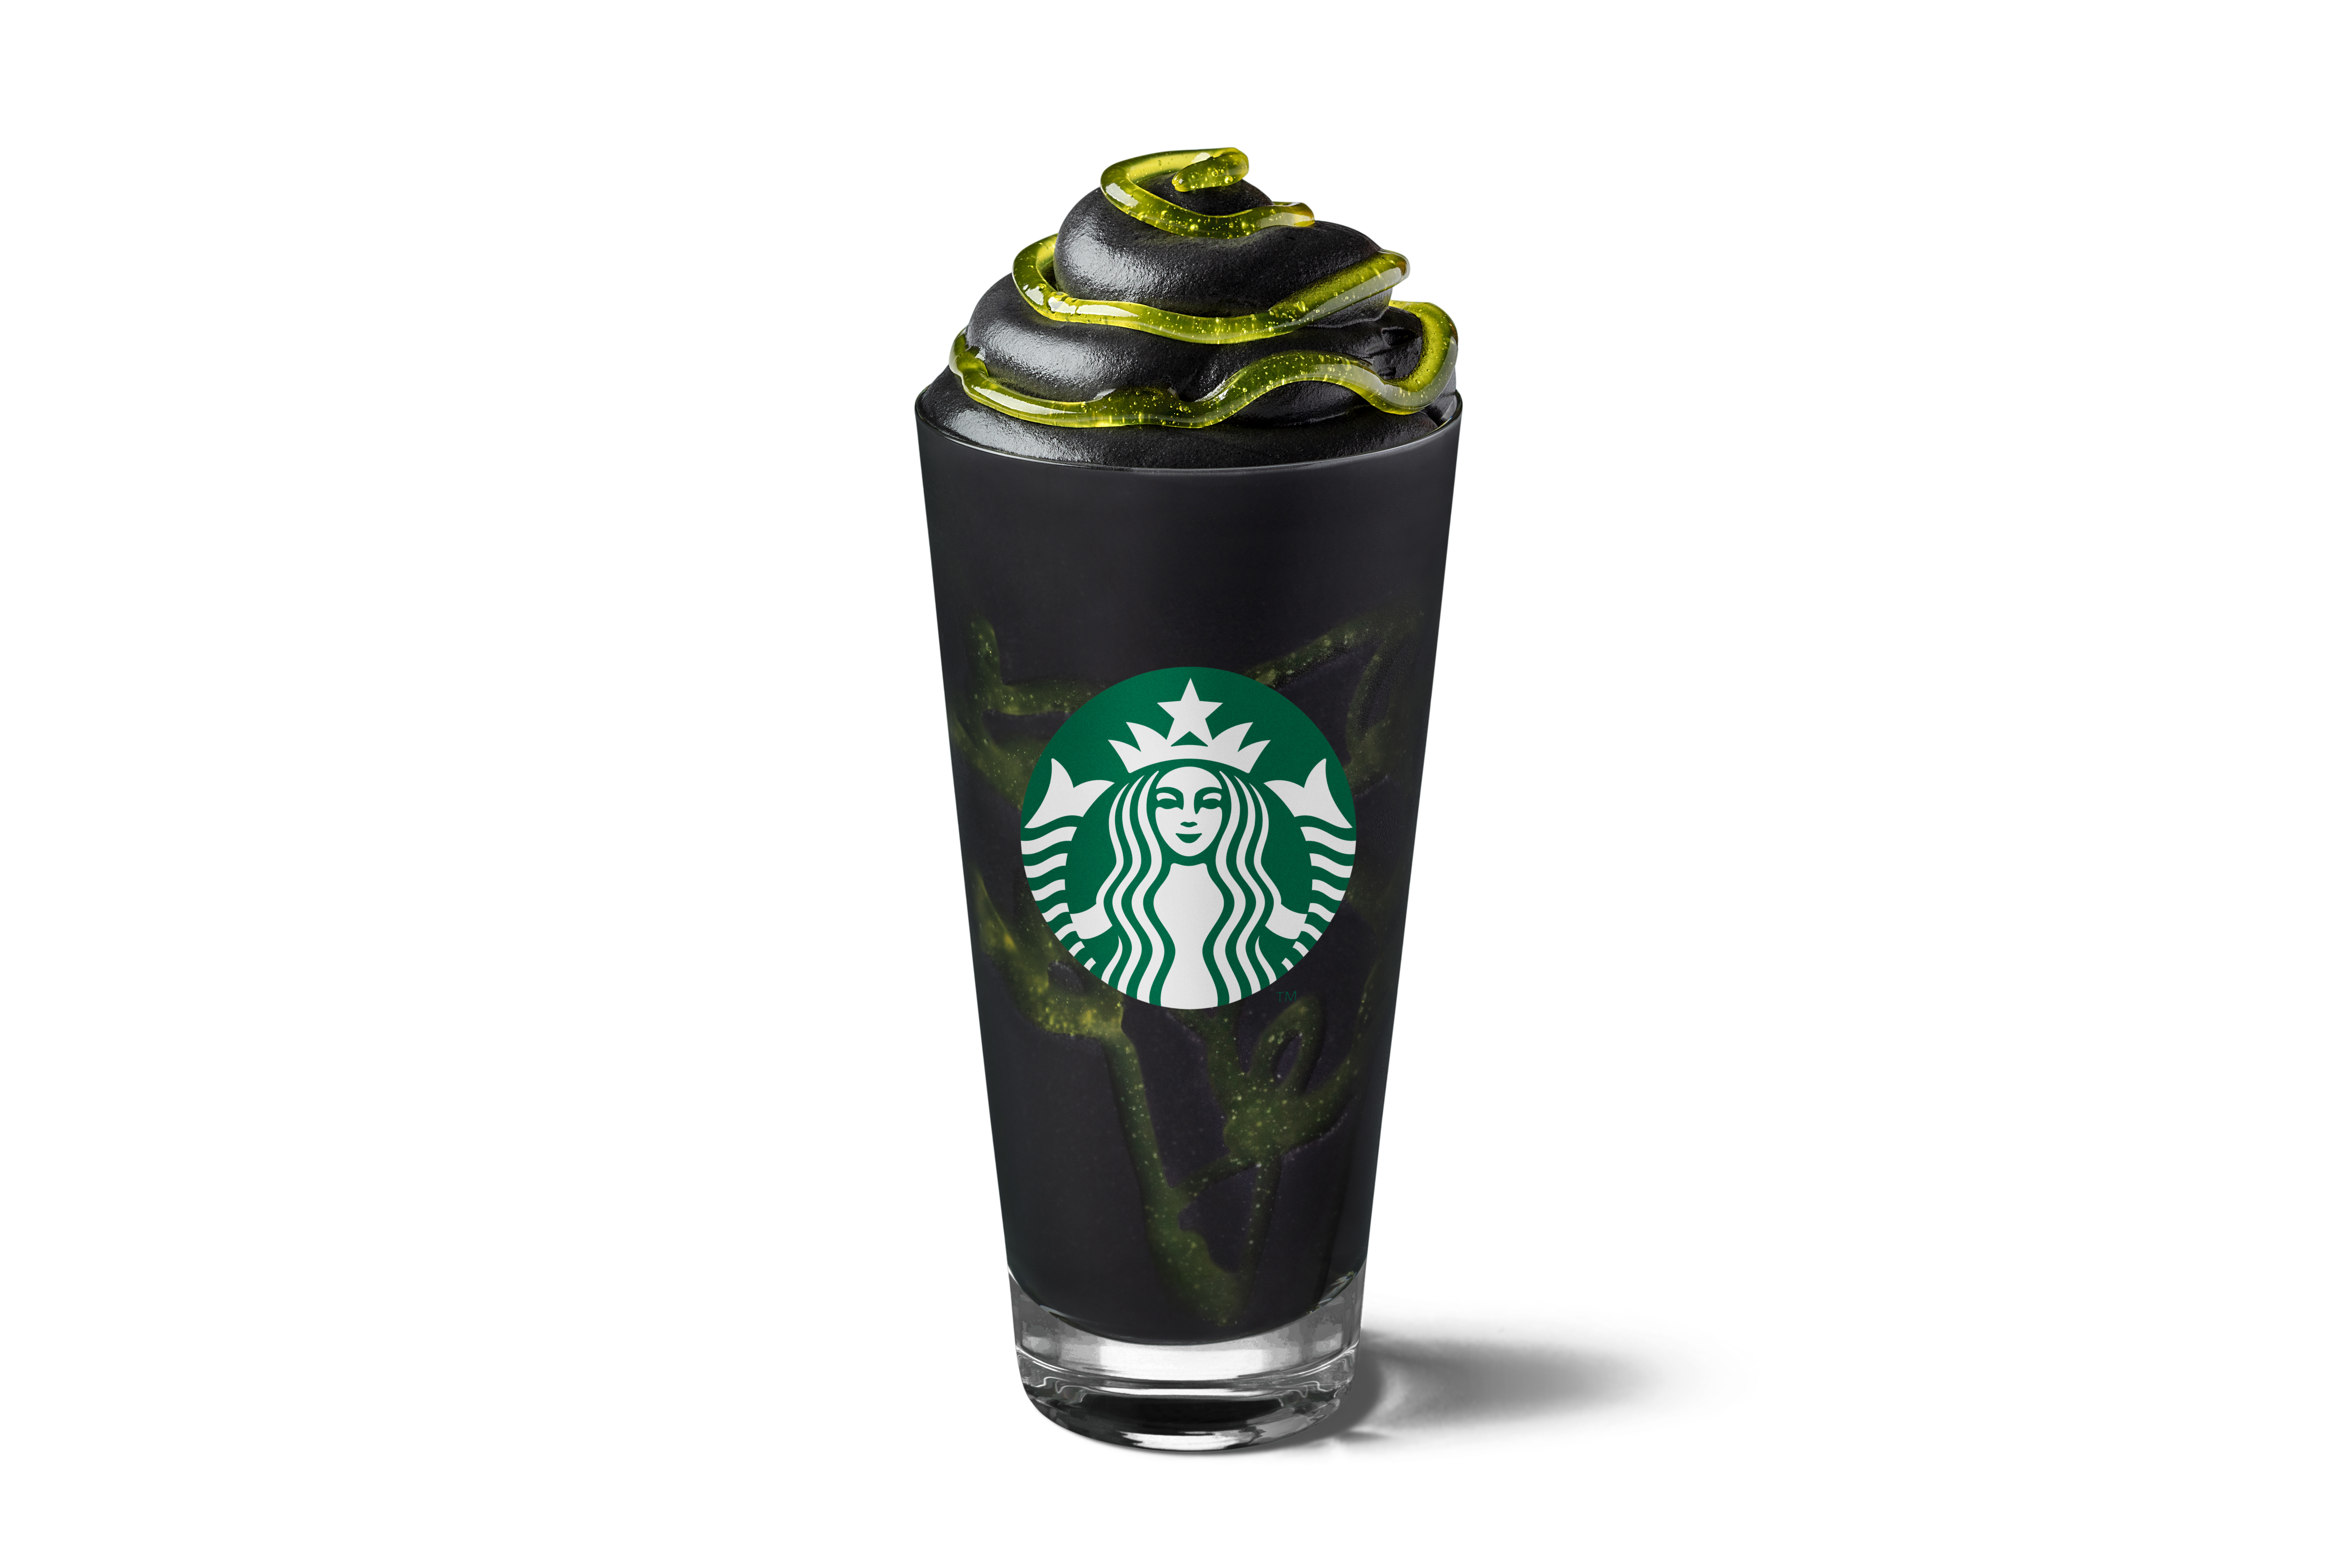 2020 Halloween Frap The NEW Starbucks Phantom Frappuccino is Scarily Good   Starbucks